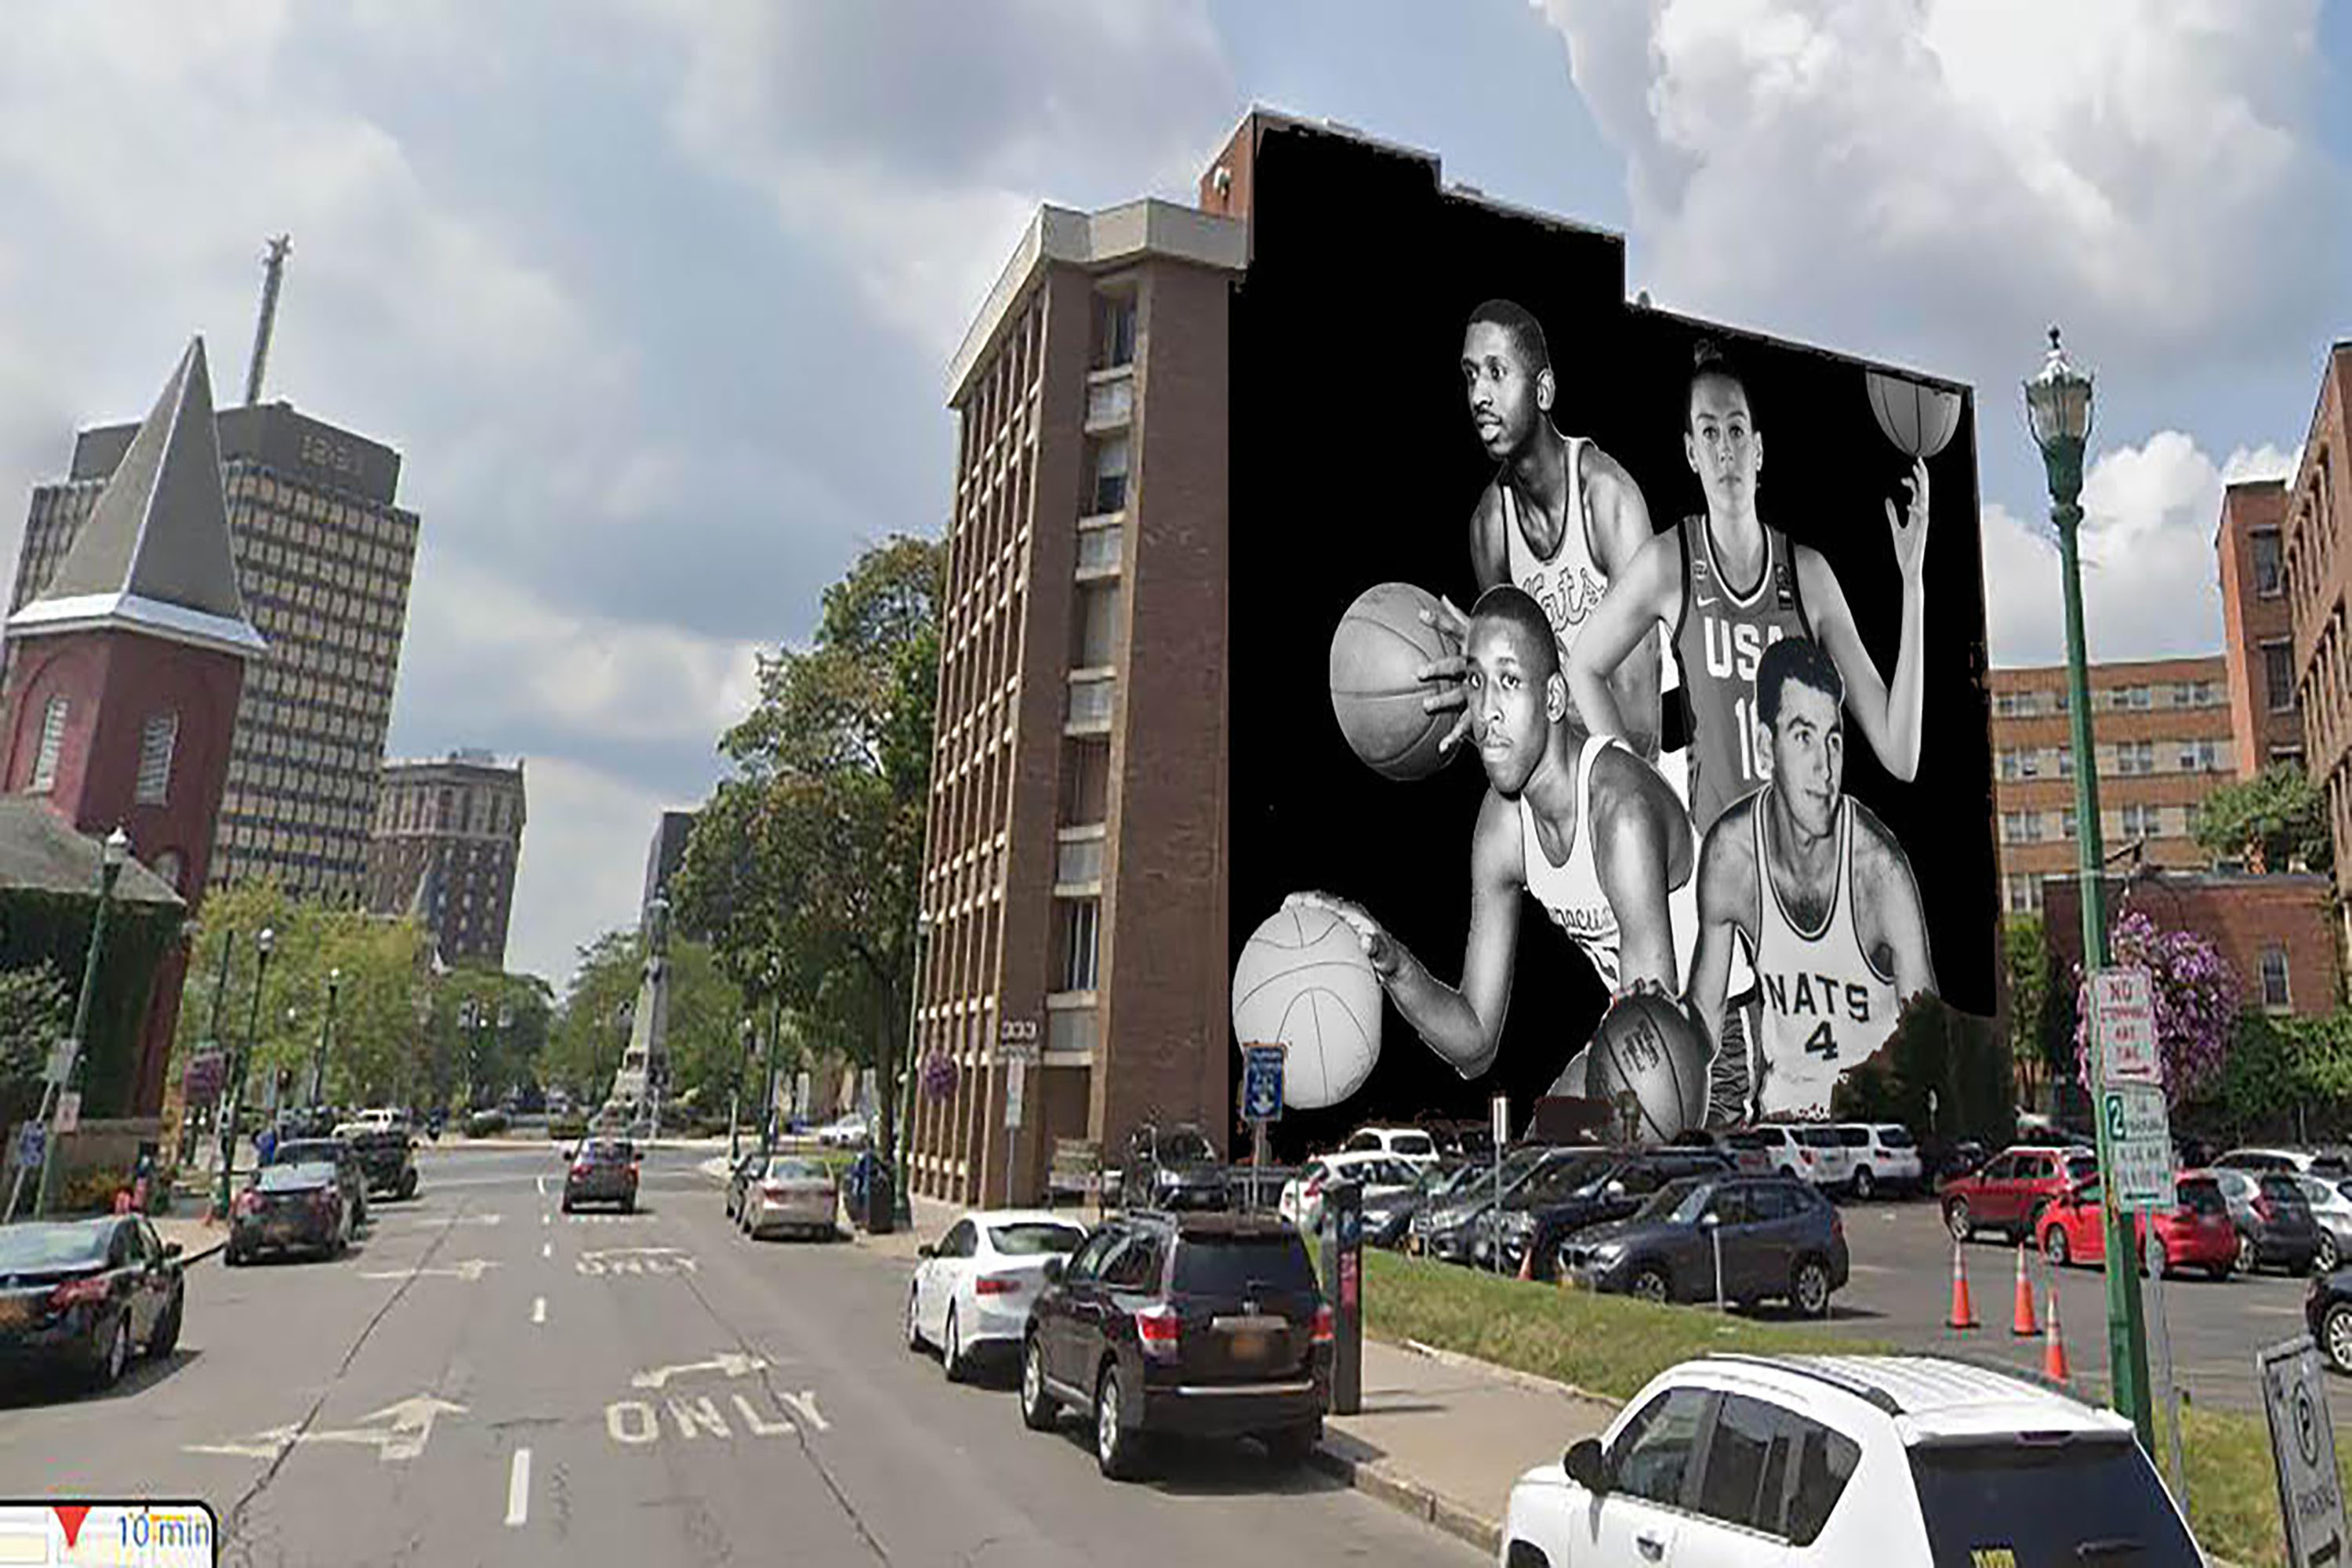 The Monroe Building on East Onondaga Street will serve as the canvas for this mural project, featuring four local athletes. Courtesy of Frank Malfitano/Jonas Never (Artist)